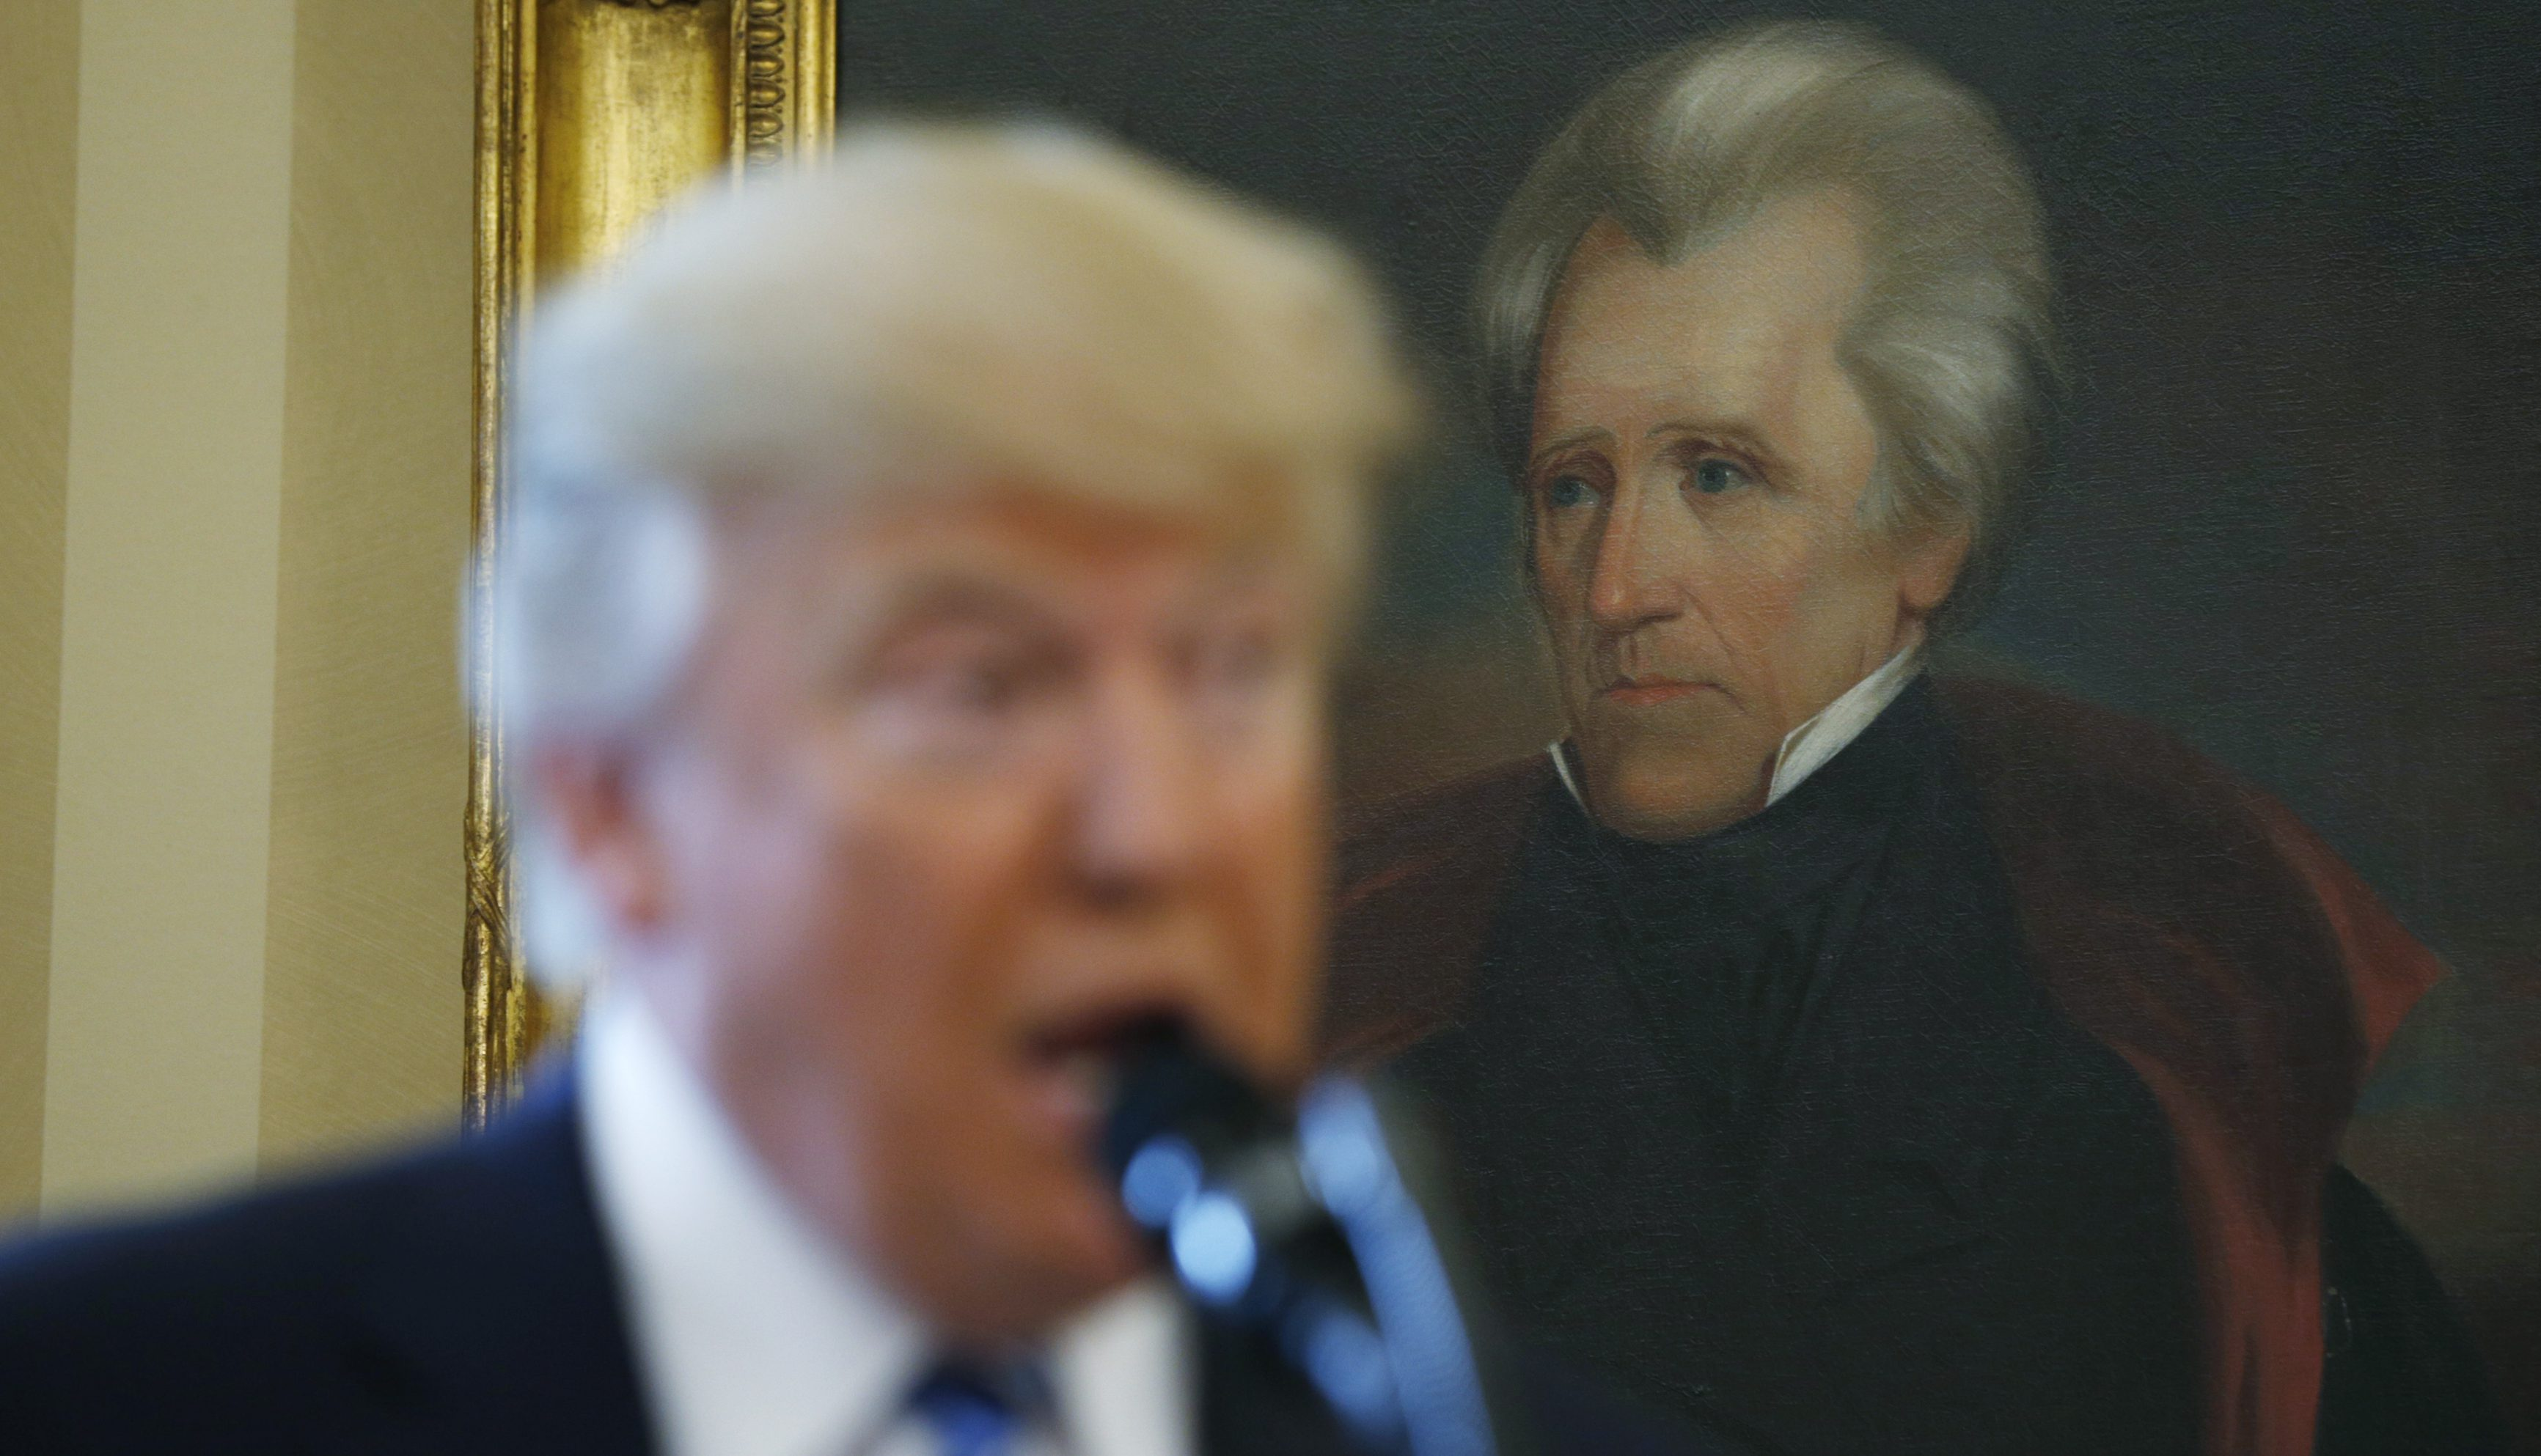 U.S. President Donald Trump speaks in front of a portrait of former U.S. President Andrew Jackson during a swearing-in ceremony for new Attorney General Jeff Sessions at the White House in Washington, U.S., February 9, 2017.